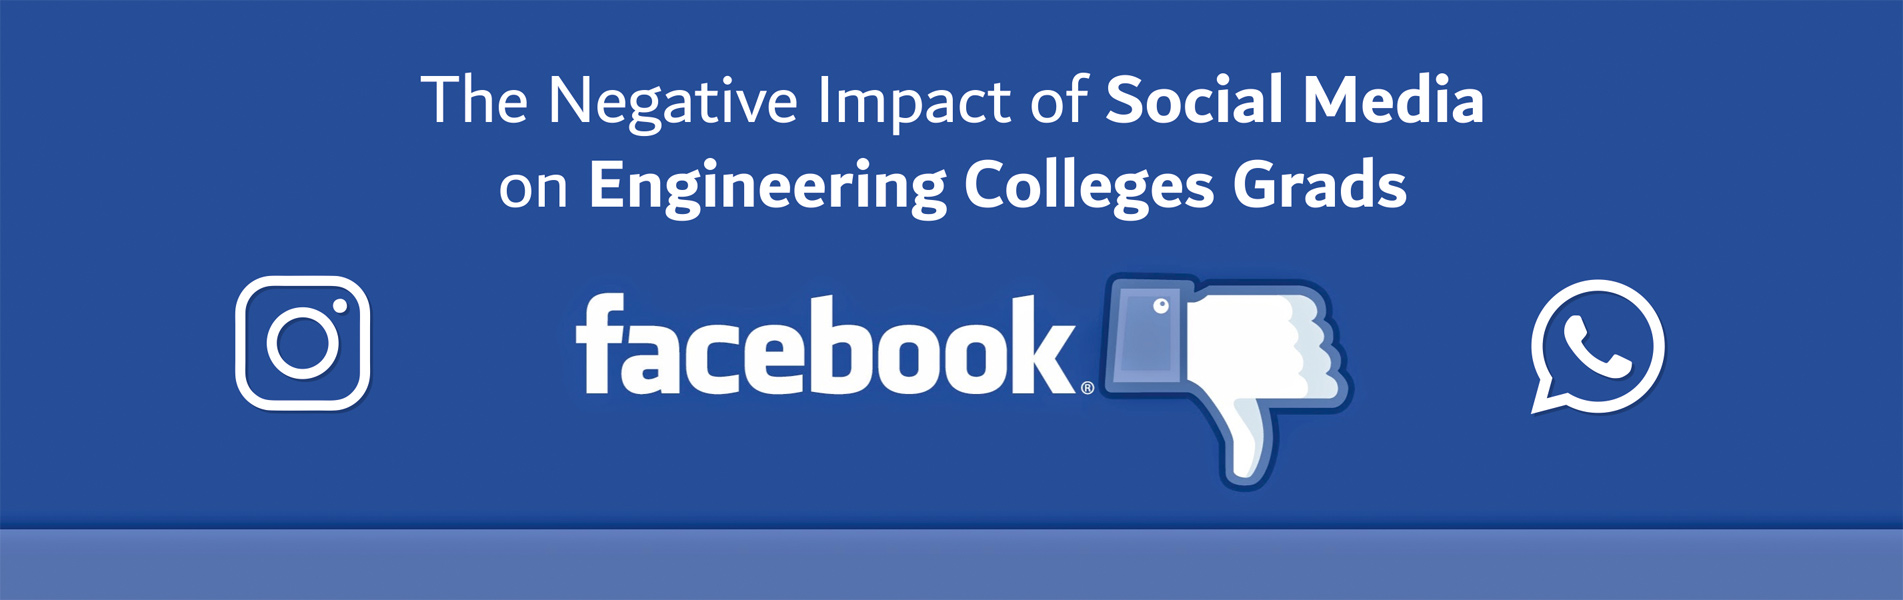 The-negative-impact-of-Social-Media-on-Engineering-Colleges-grads